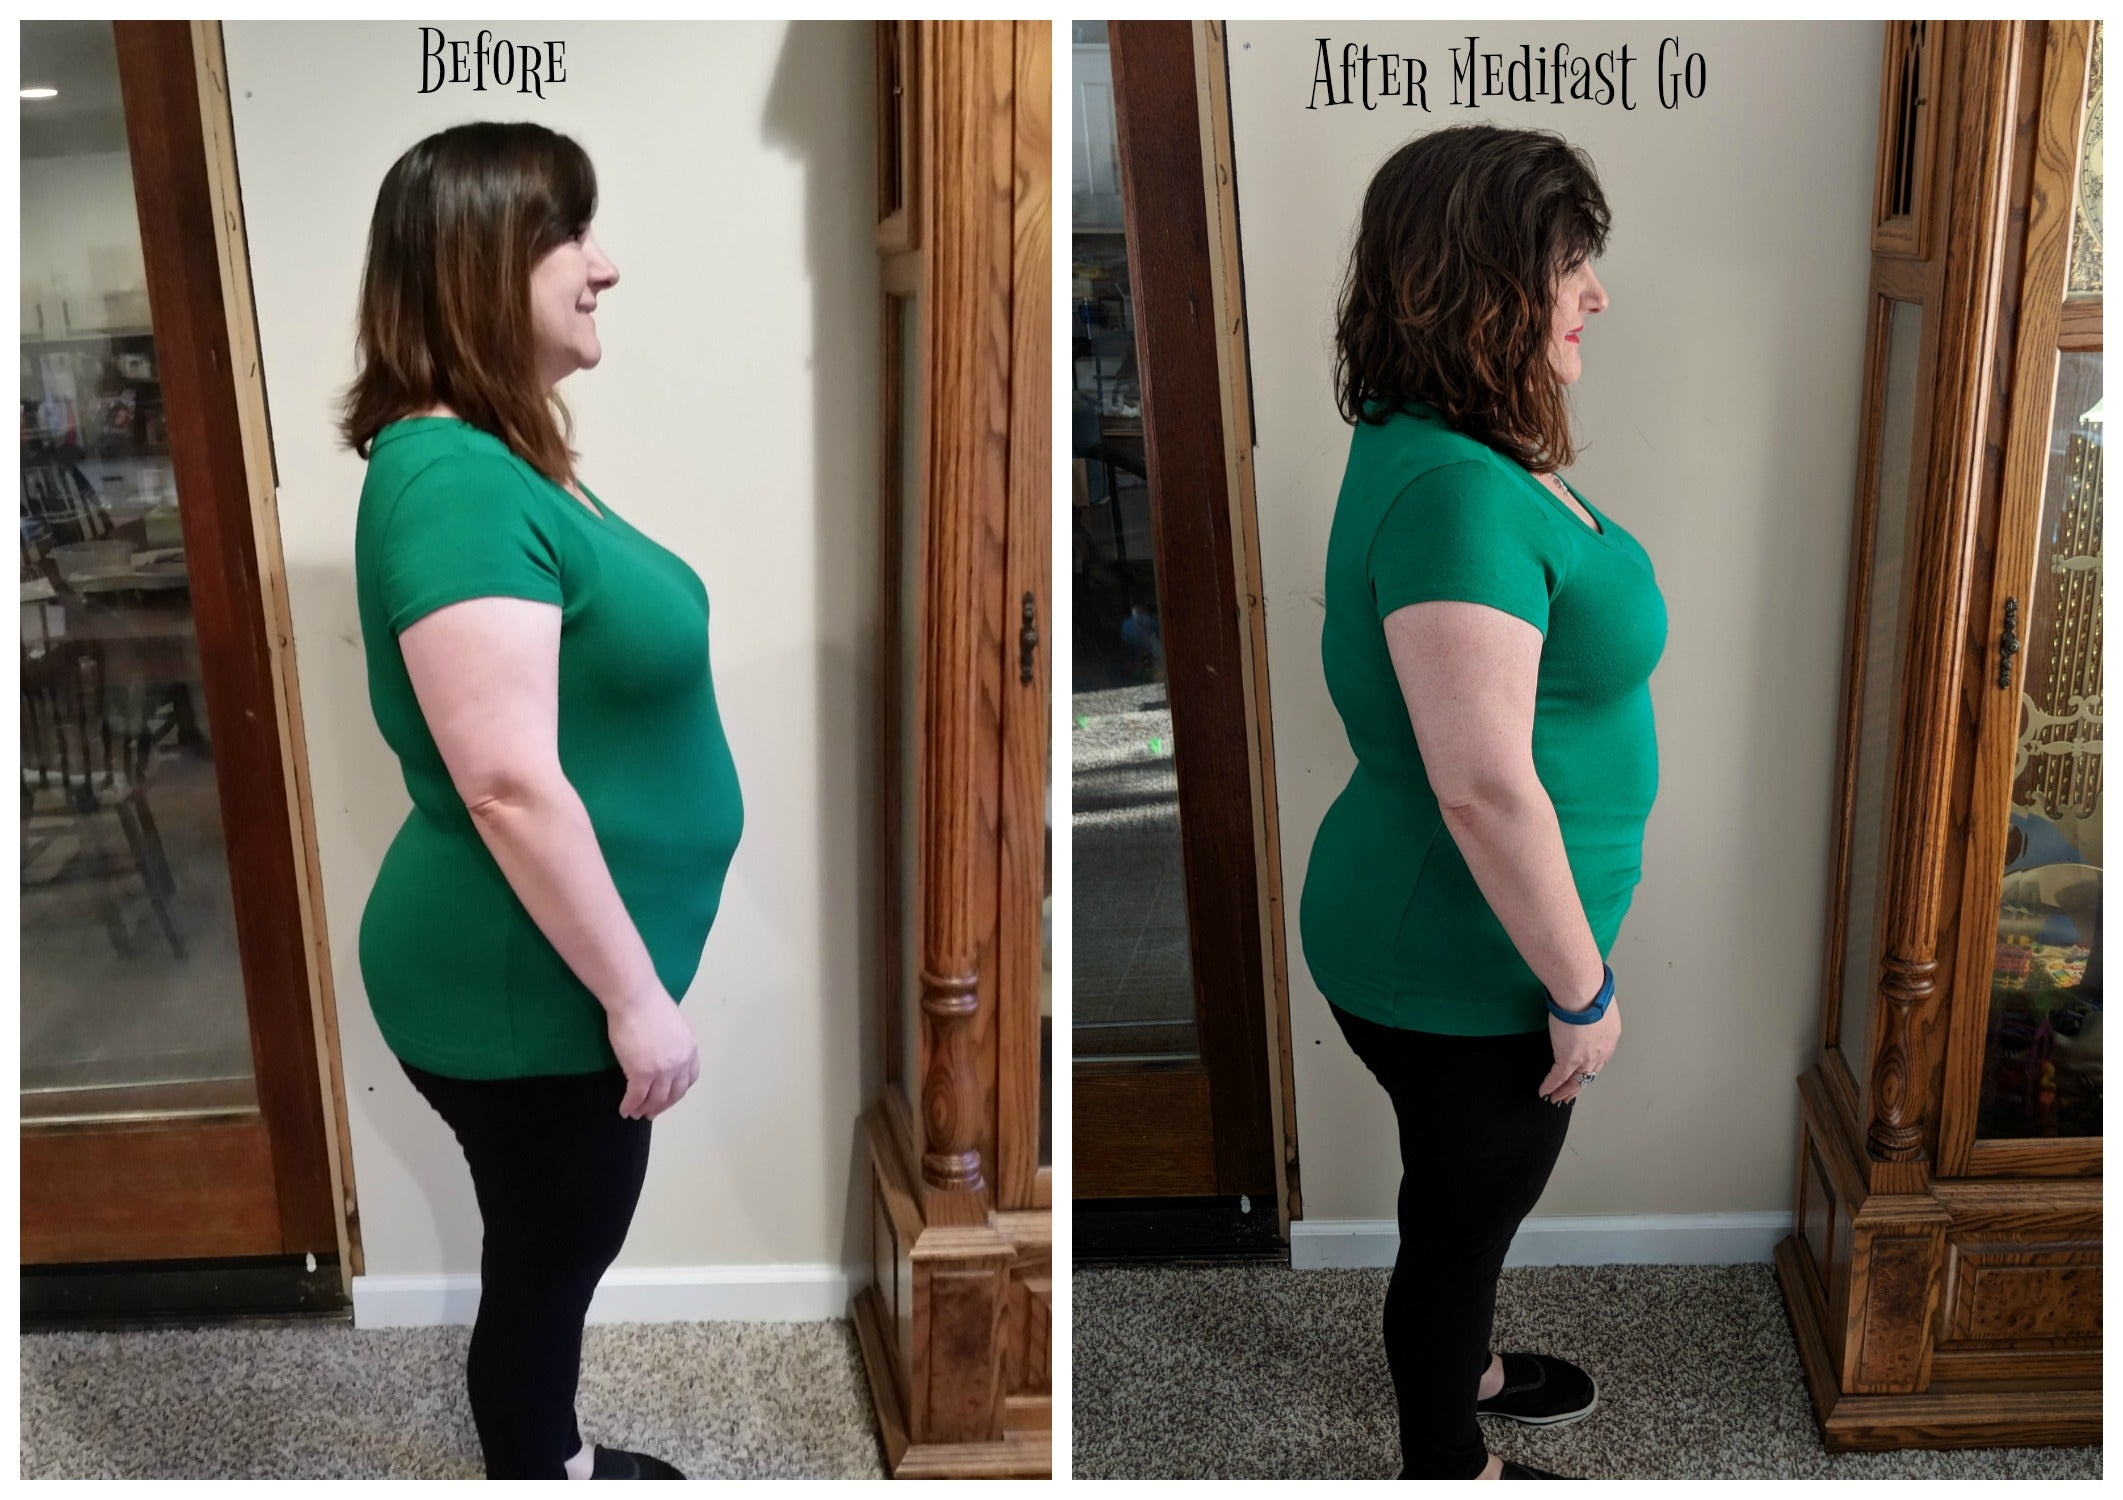 Before and after pics on Medifast Go via @agirlsgottaspa. Inches lost are obvious! #sponsored #medifast #weightlossjourney #diet